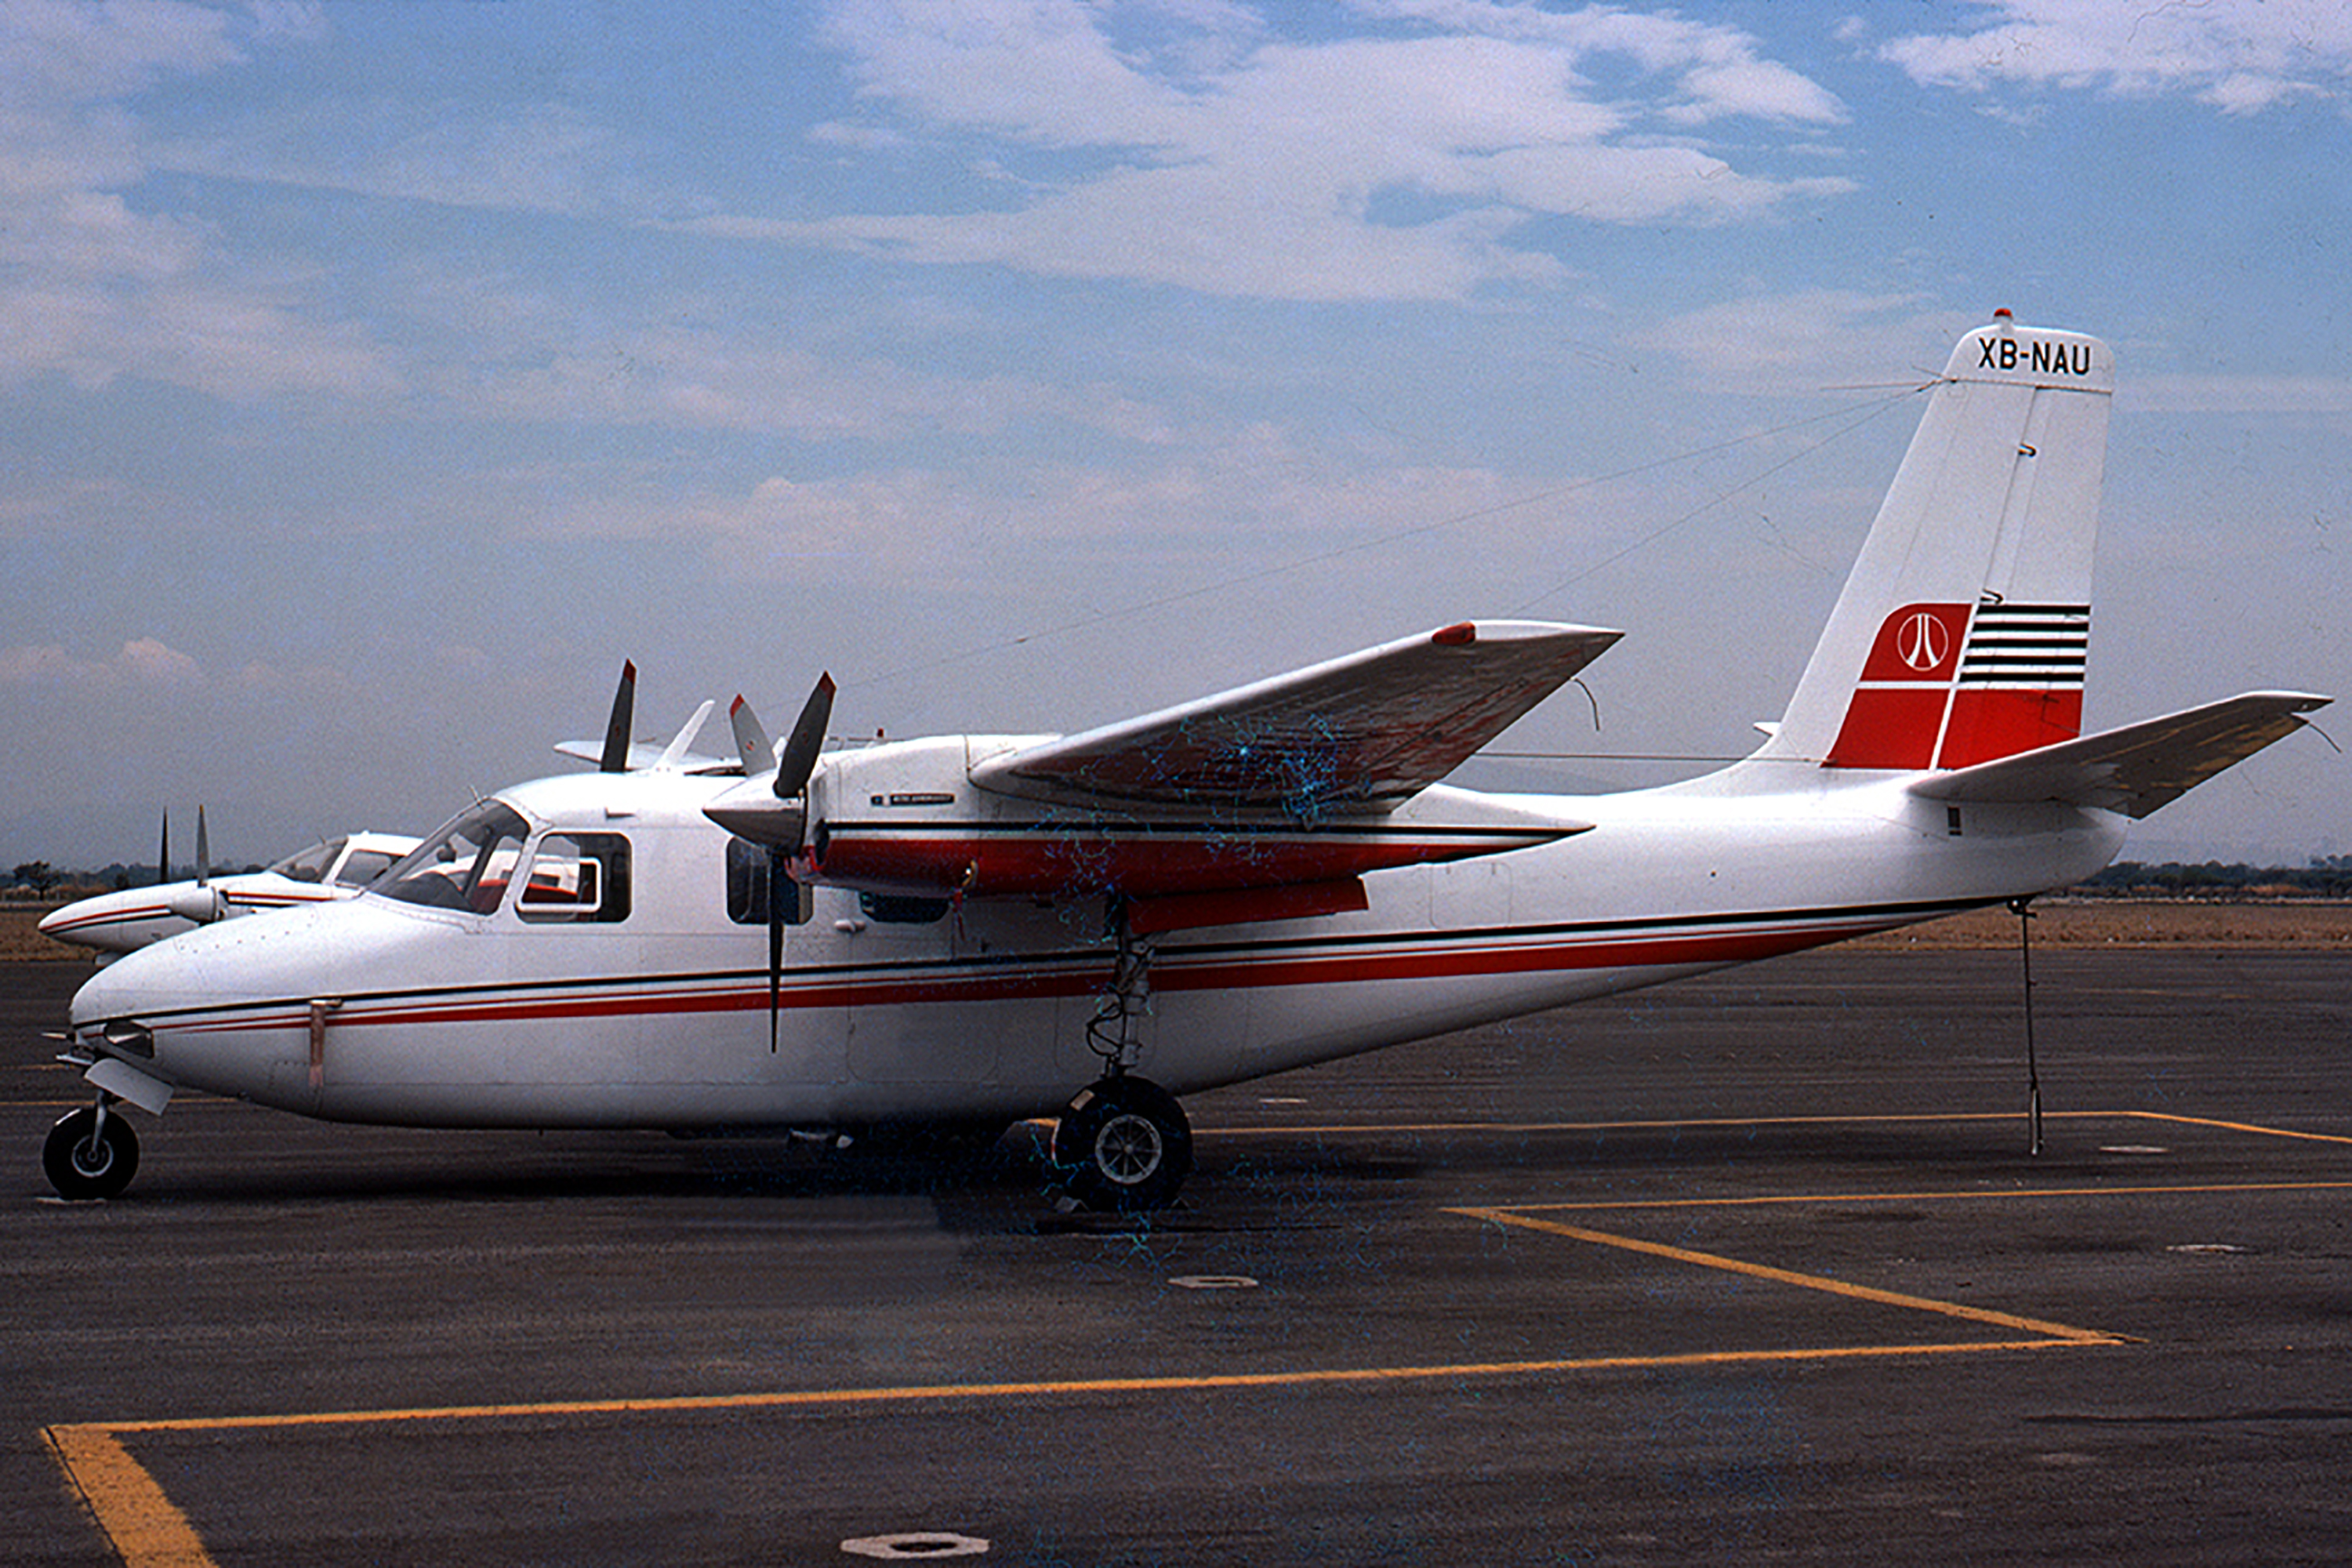 XB-NAU: Scanned from a slide taken on June 12, 1976 at Guadalajara, Jalisco, Mexico, by an unknown photographer, XB-NAU is serial number 1668-17 and was exported as a new aircraft in February 1967 for Cementos Mexicanos SAdeCV. of Monterrey, Nuevo Leon. At the time the slide was taken it was owned by Belloc Carlos Zambrano, of Guadalajara. It has been subsequently re-registered in Mexico, first as XA-TMW in January 1999, then as XB-KSK in April 2008. It is still current there.